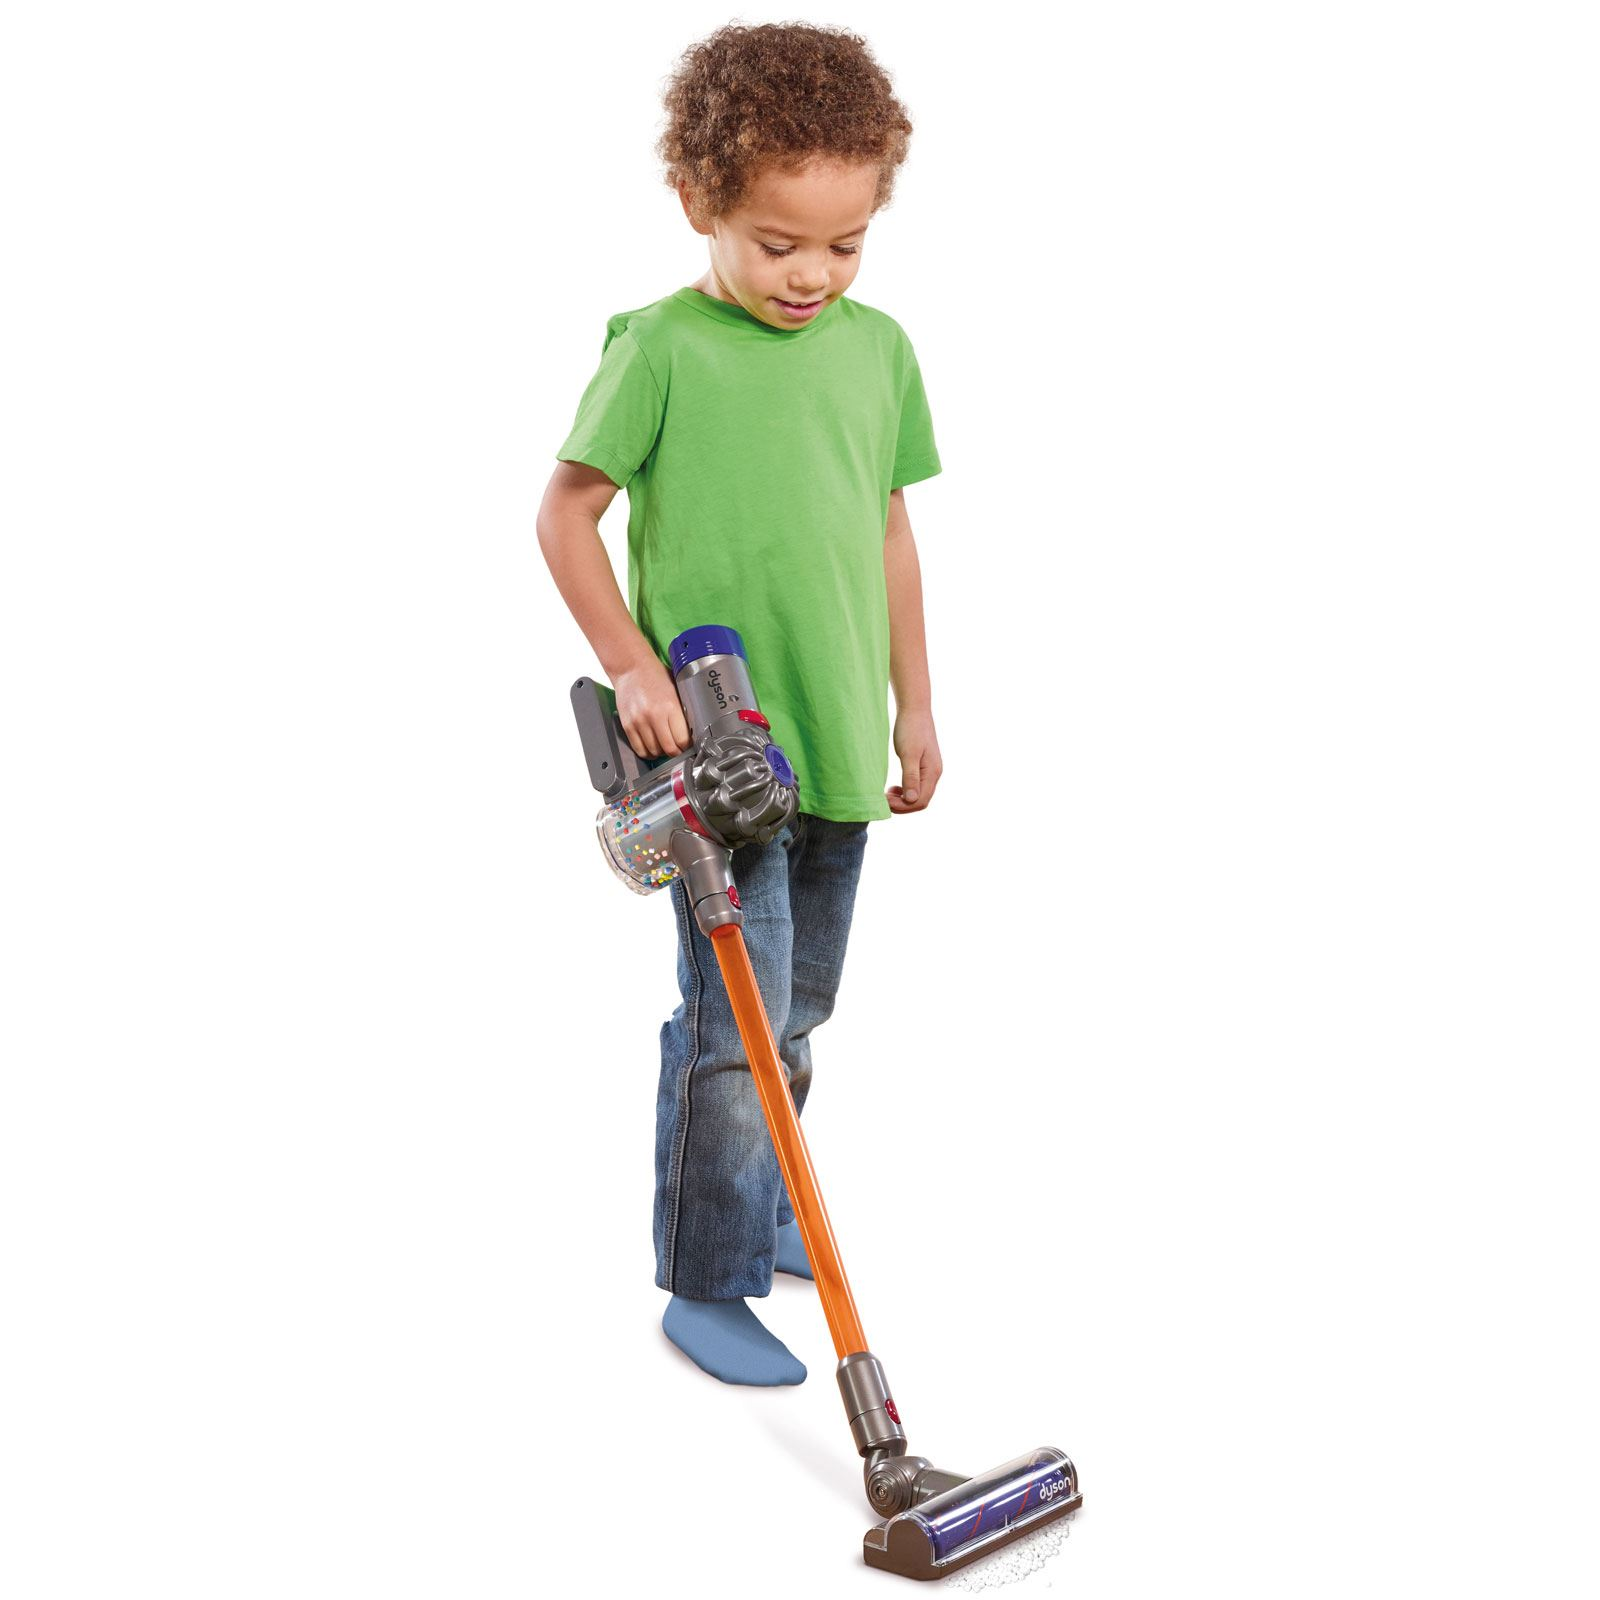 Indexbild 9 - KIDS VACUUM CLEANERS - LITTLE HENRY HETTY DYSON - KIDS CHILDRENS ROLE PLAY